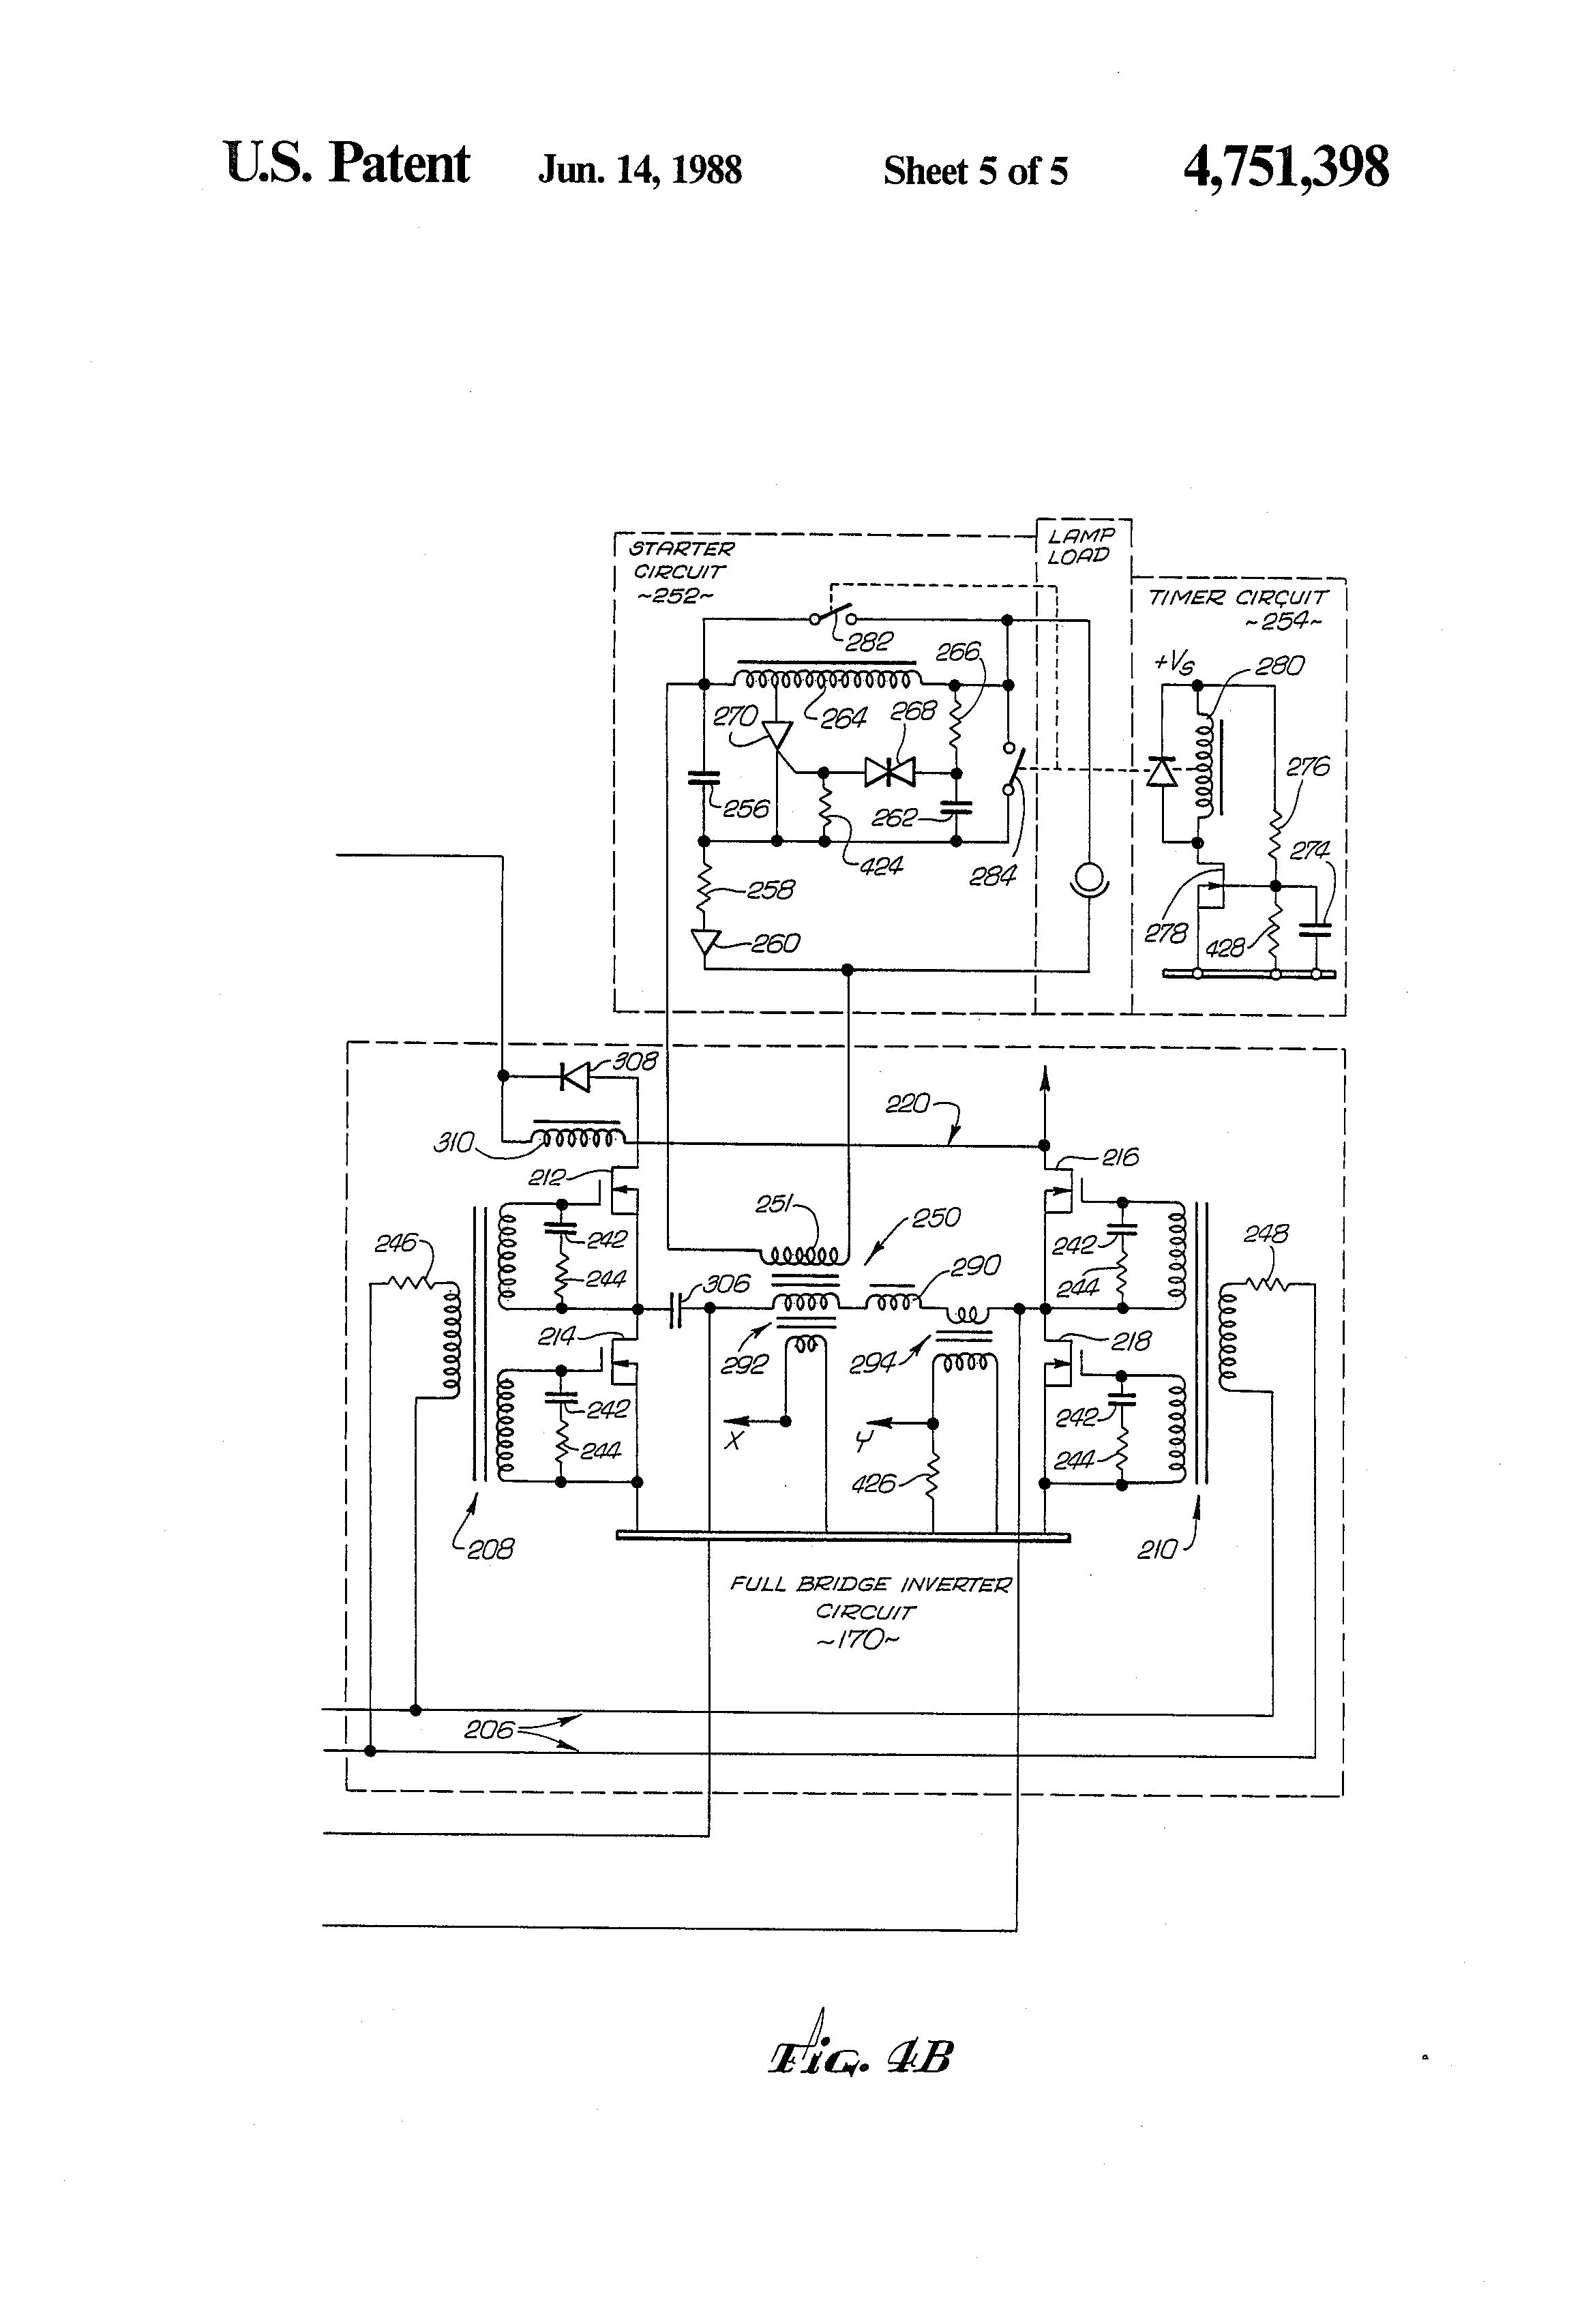 Contemporary High Pressure Sodium Ballast Wiring Diagram - High pressure  sodium ballast wiring diagram